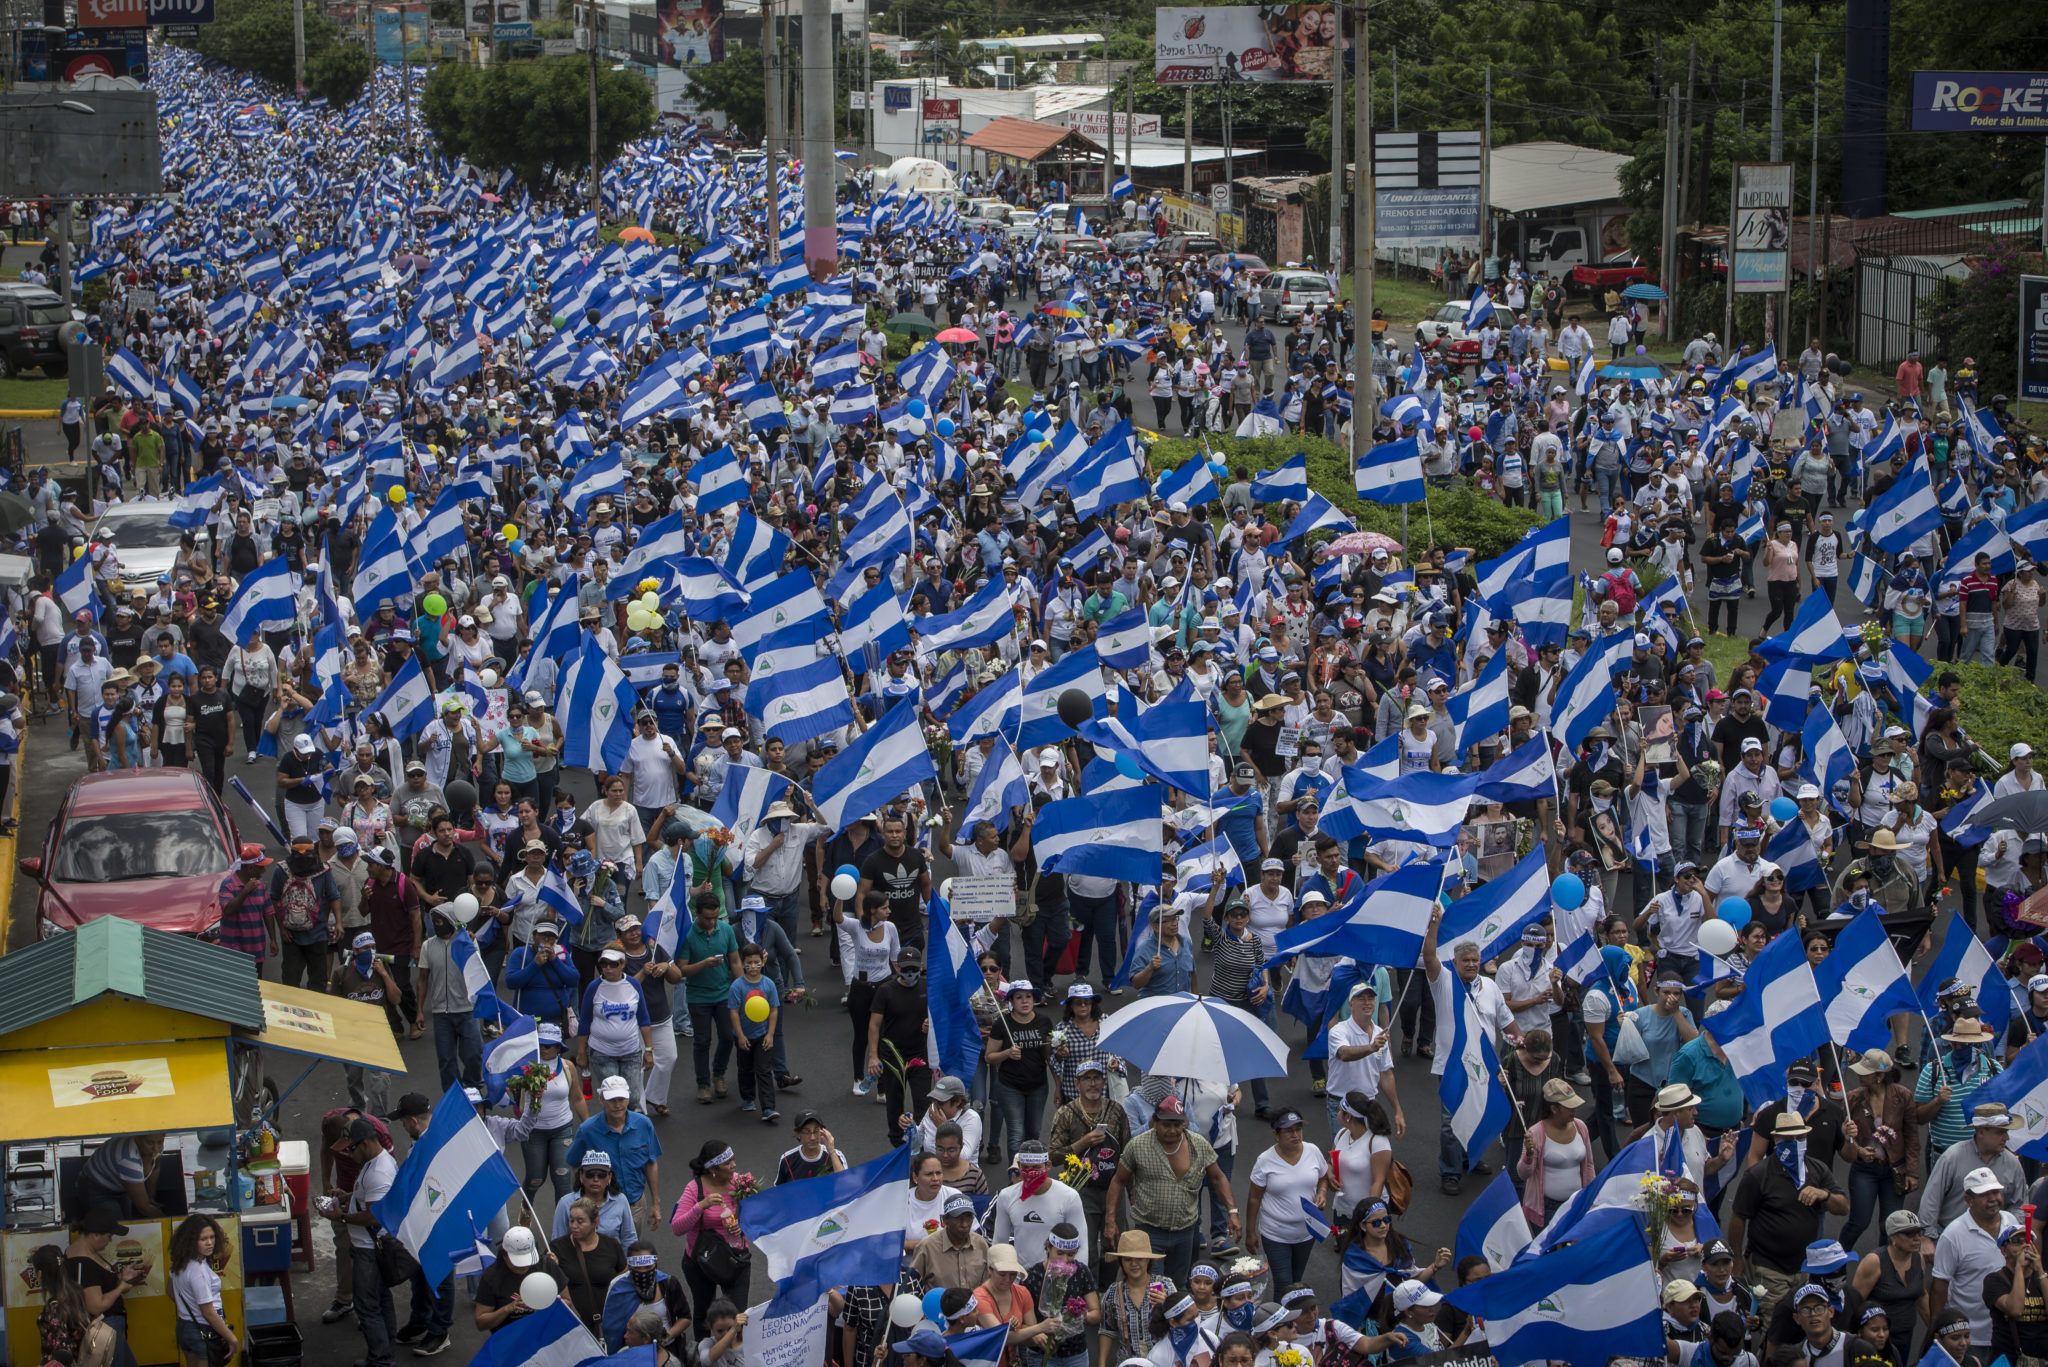 Urgent Action: A year on, many in jail for protesting in Nicaragua